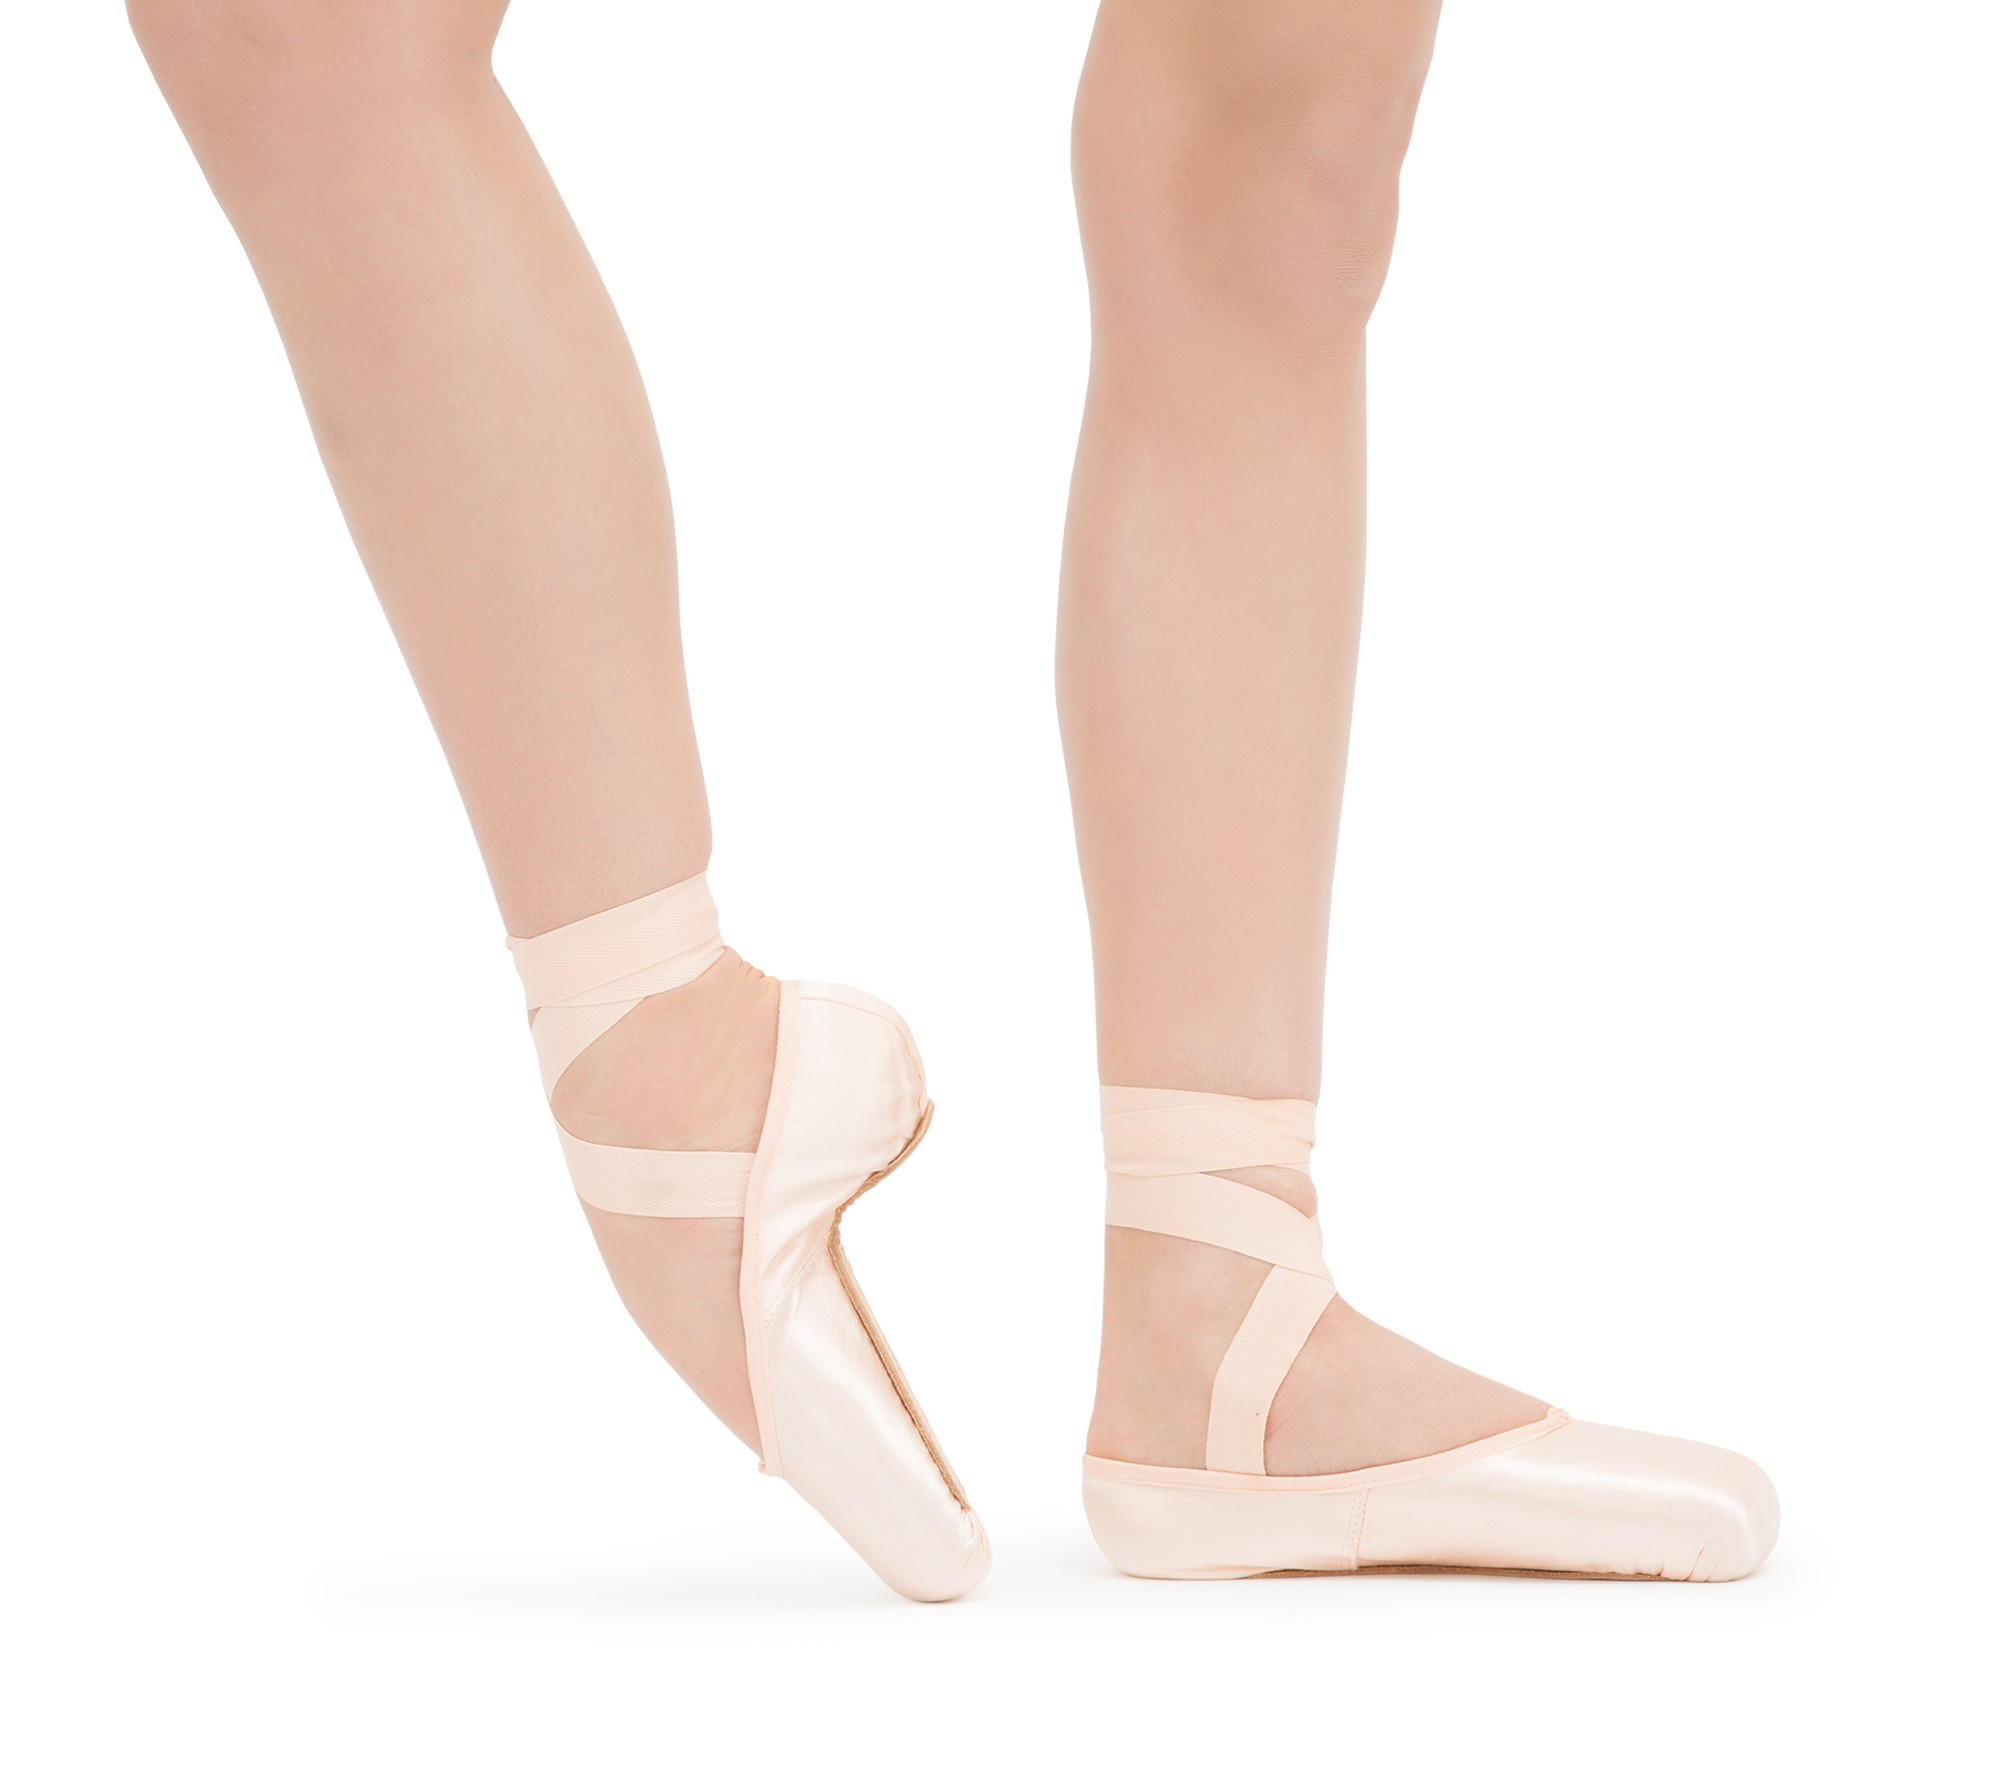 Alicia pointe shoes - Large box Hard sole